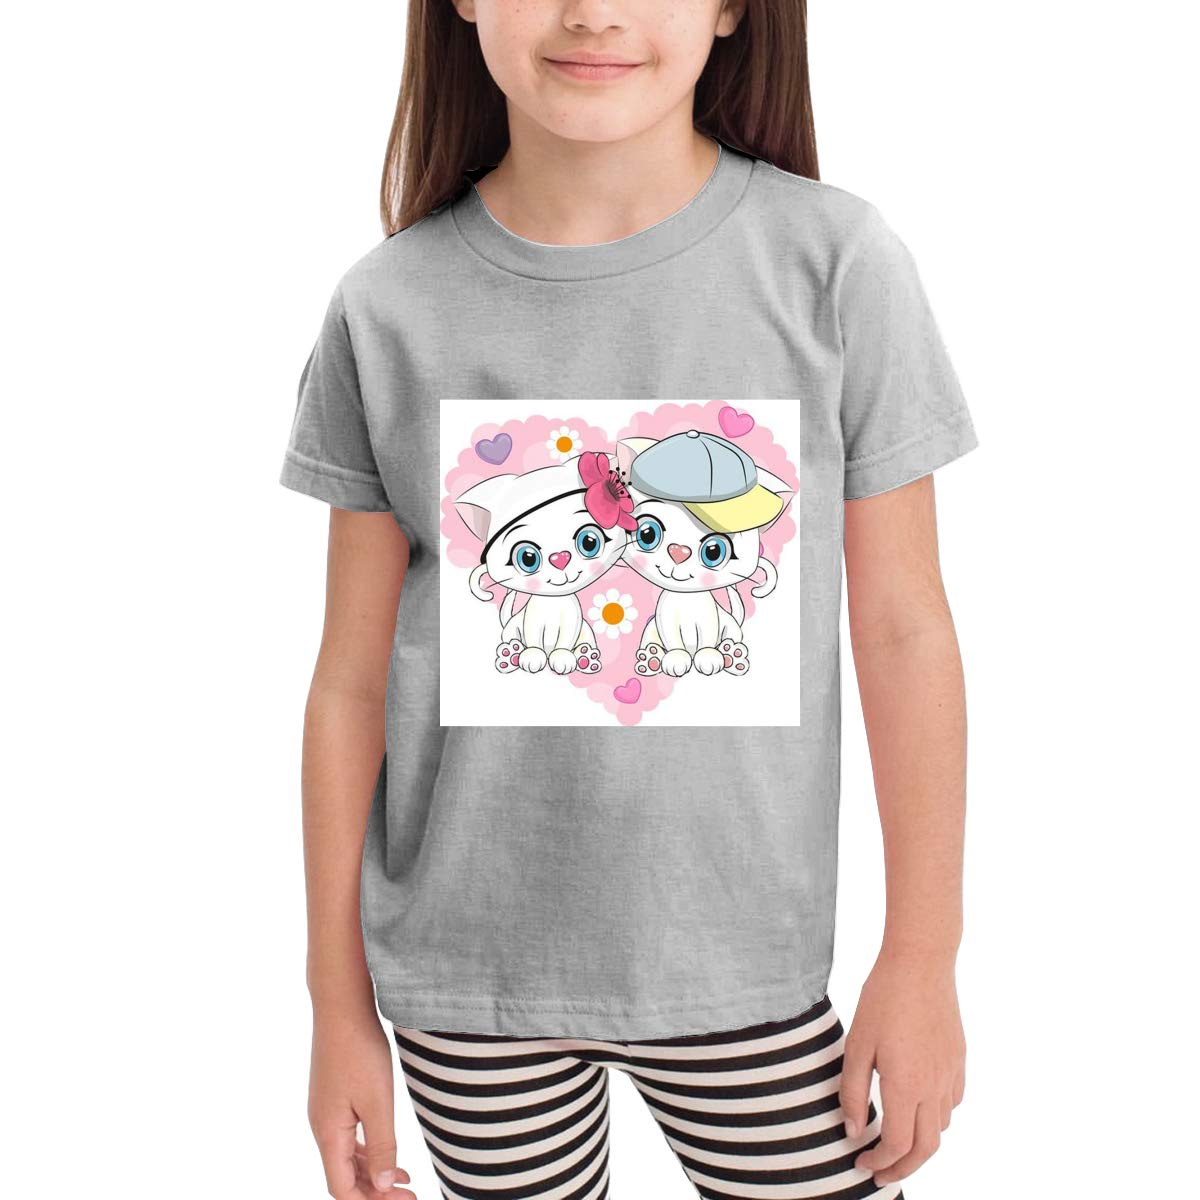 Cute Cats Love 100/% Cotton Toddler Baby Boys Girls Kids Short Sleeve T Shirt Top Tee Clothes 2-6 T